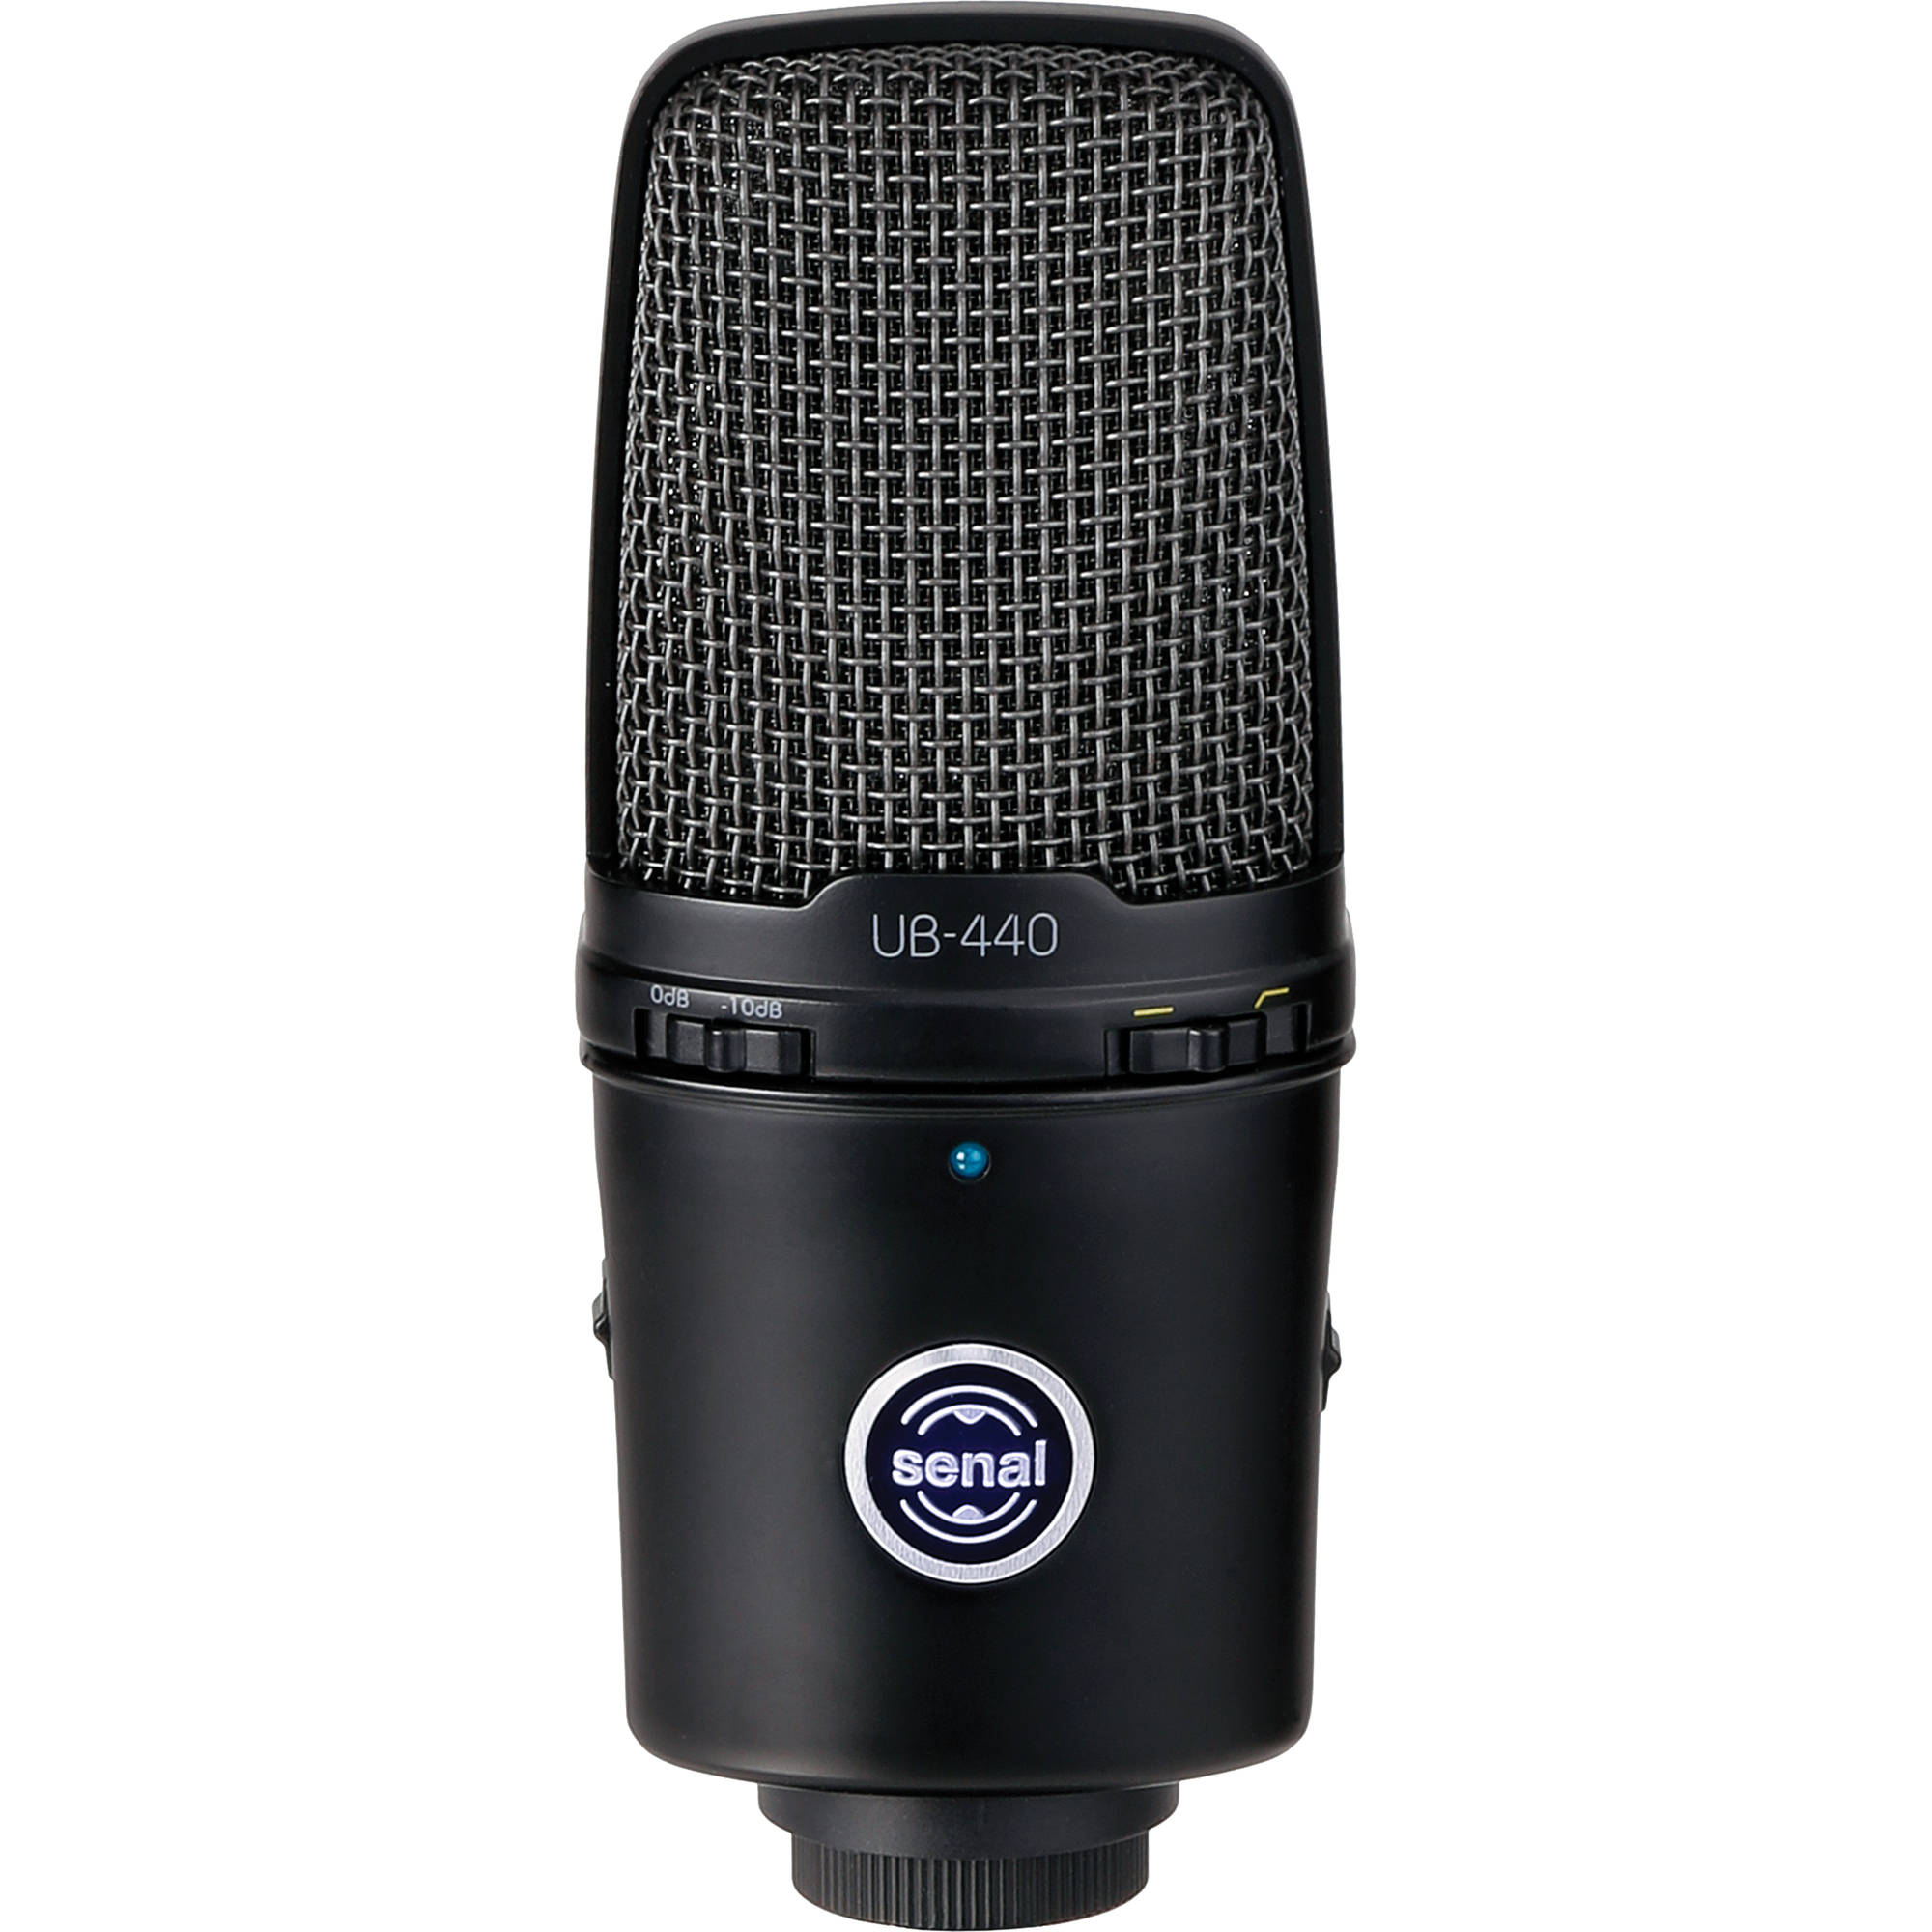 Senal UB-440 Professional USB Microphone UB-440 B&H Photo Video